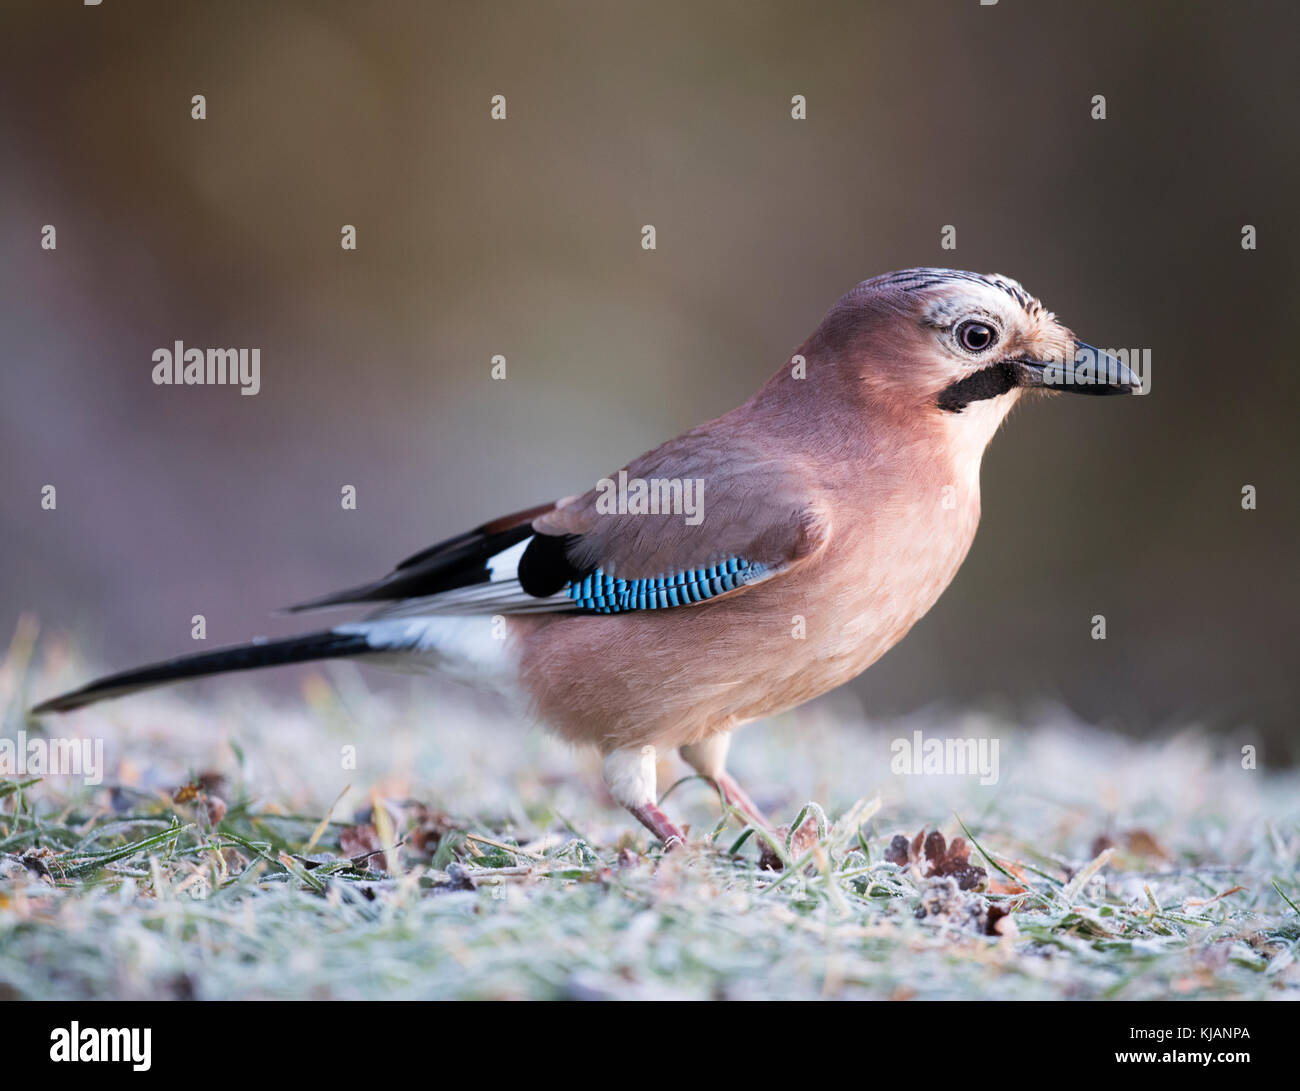 A Jay (Garrulus glandarius) searches on the frost covered ground for food, Lincolnshire - Stock Image